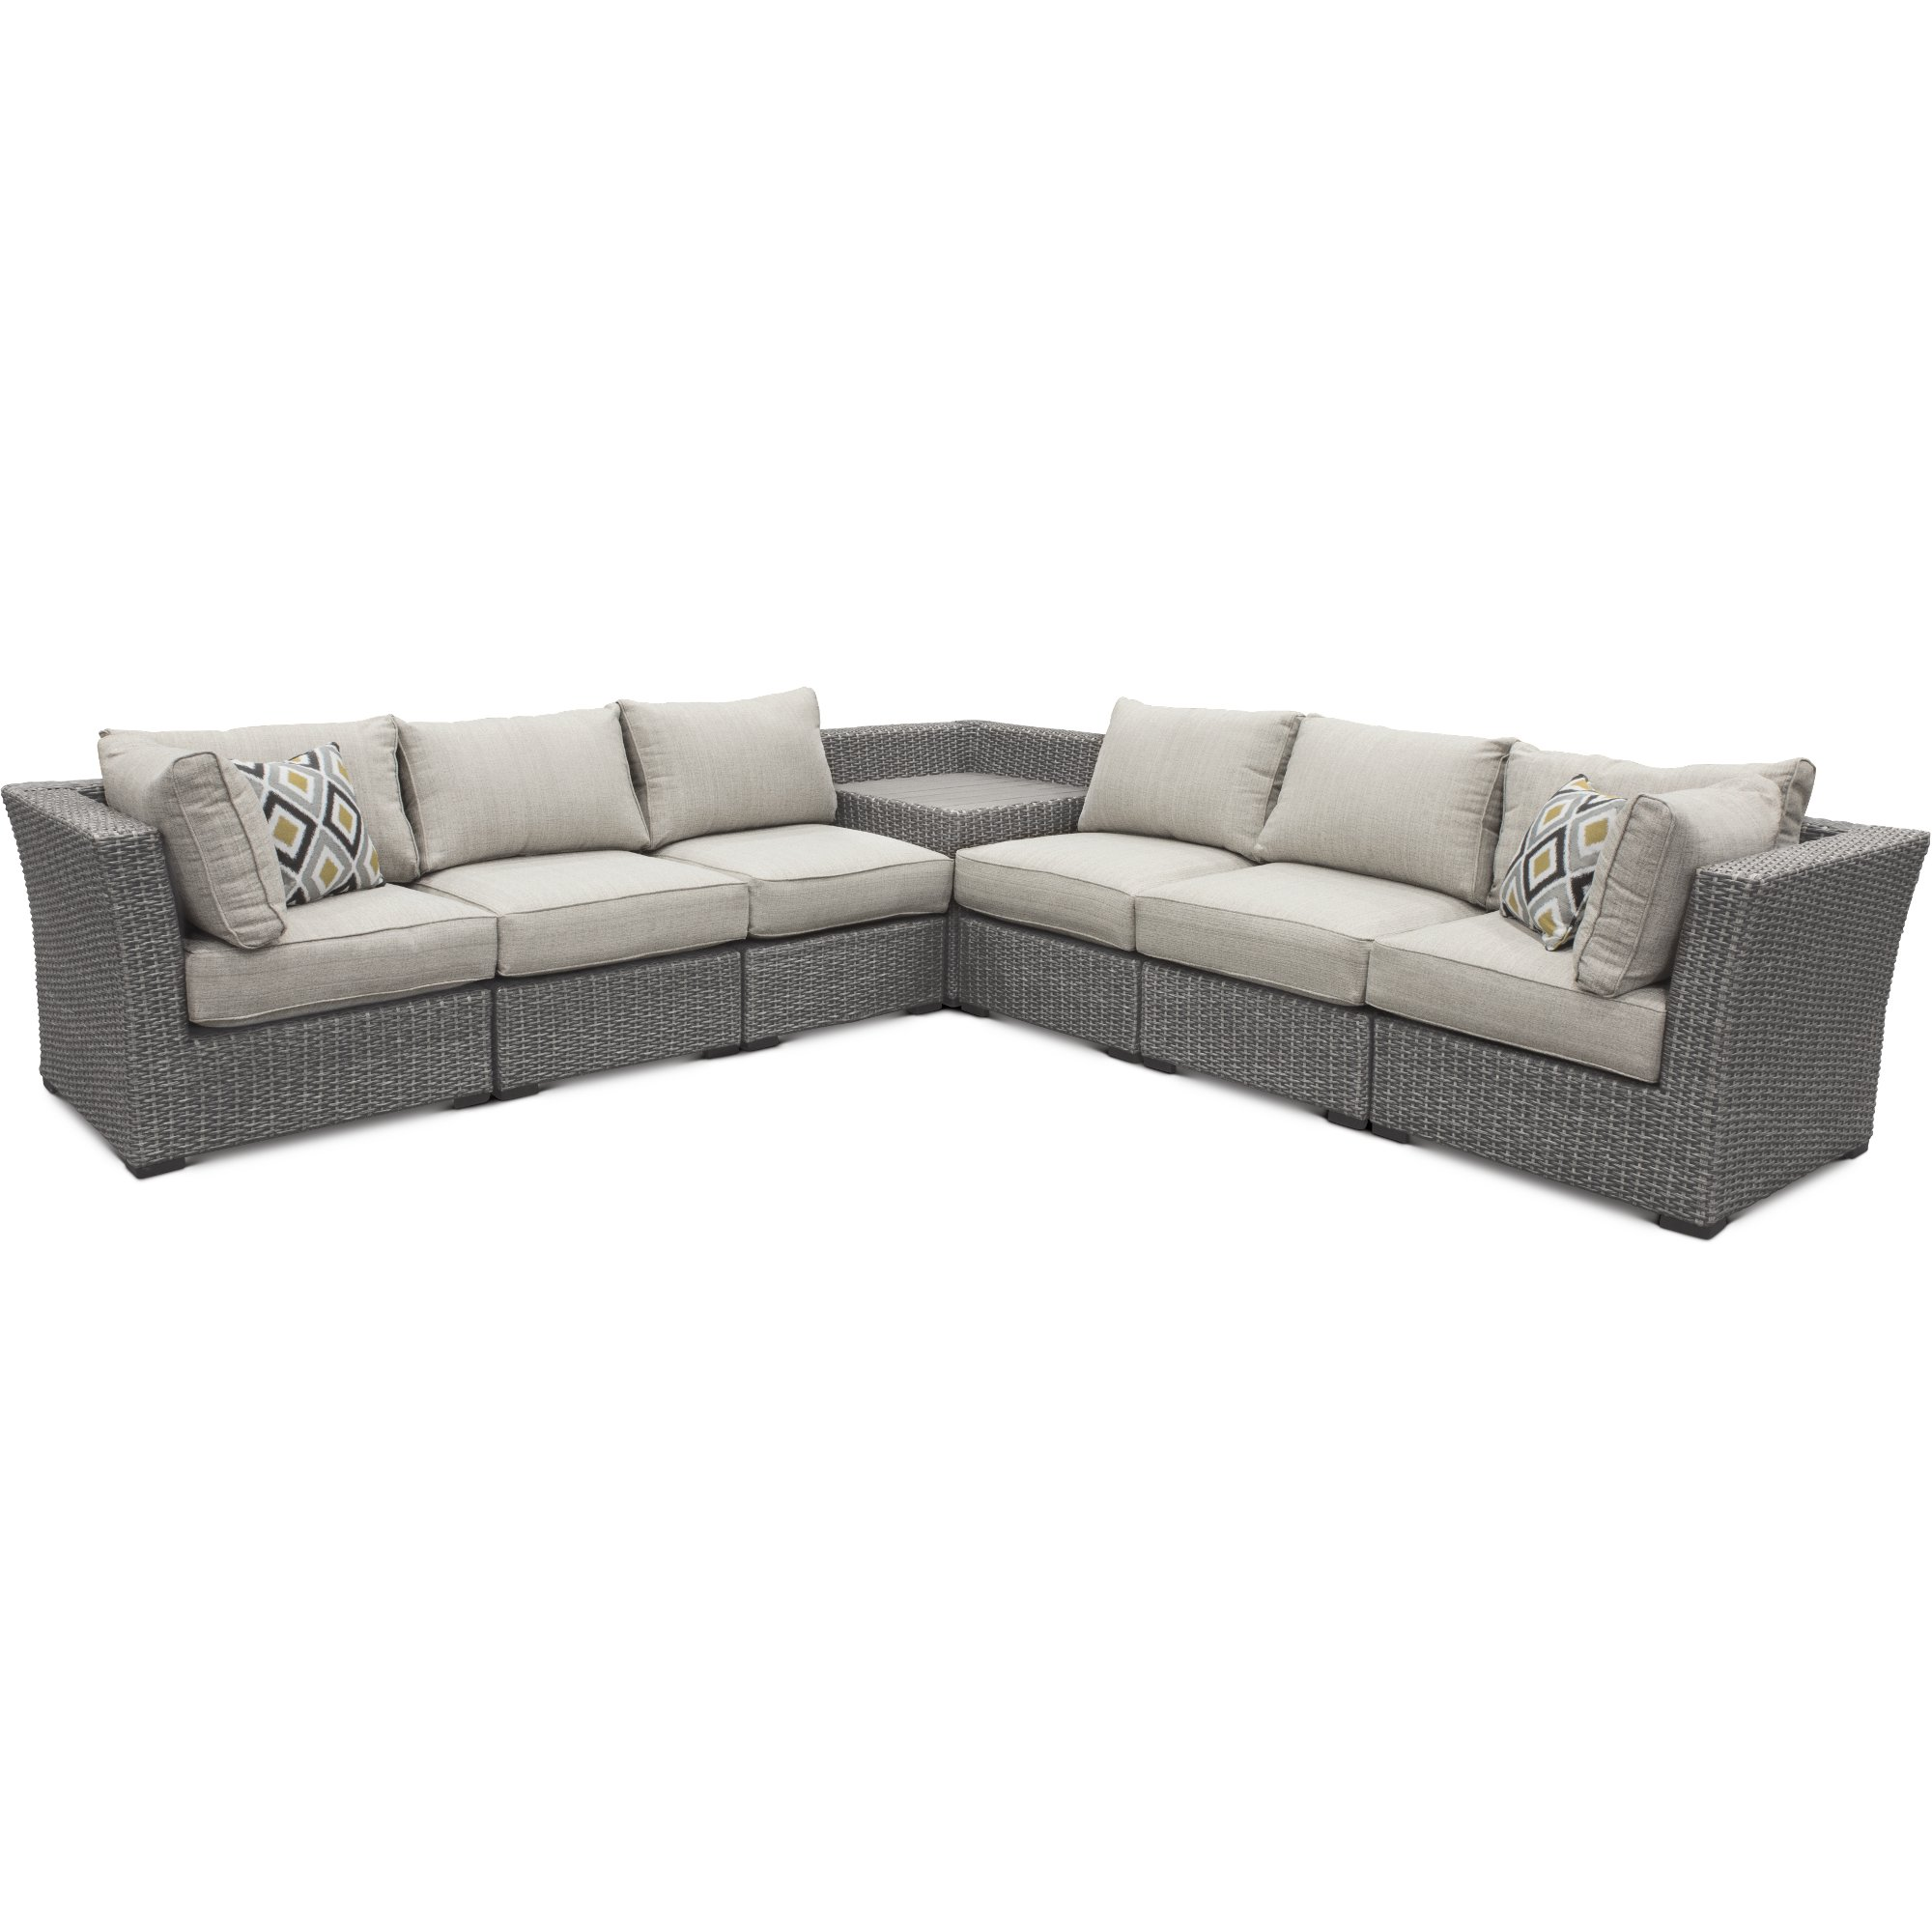 7pc Tahoe Linmix Op1 Gray 7 Piece Outdoor Patio Sectional Sofa